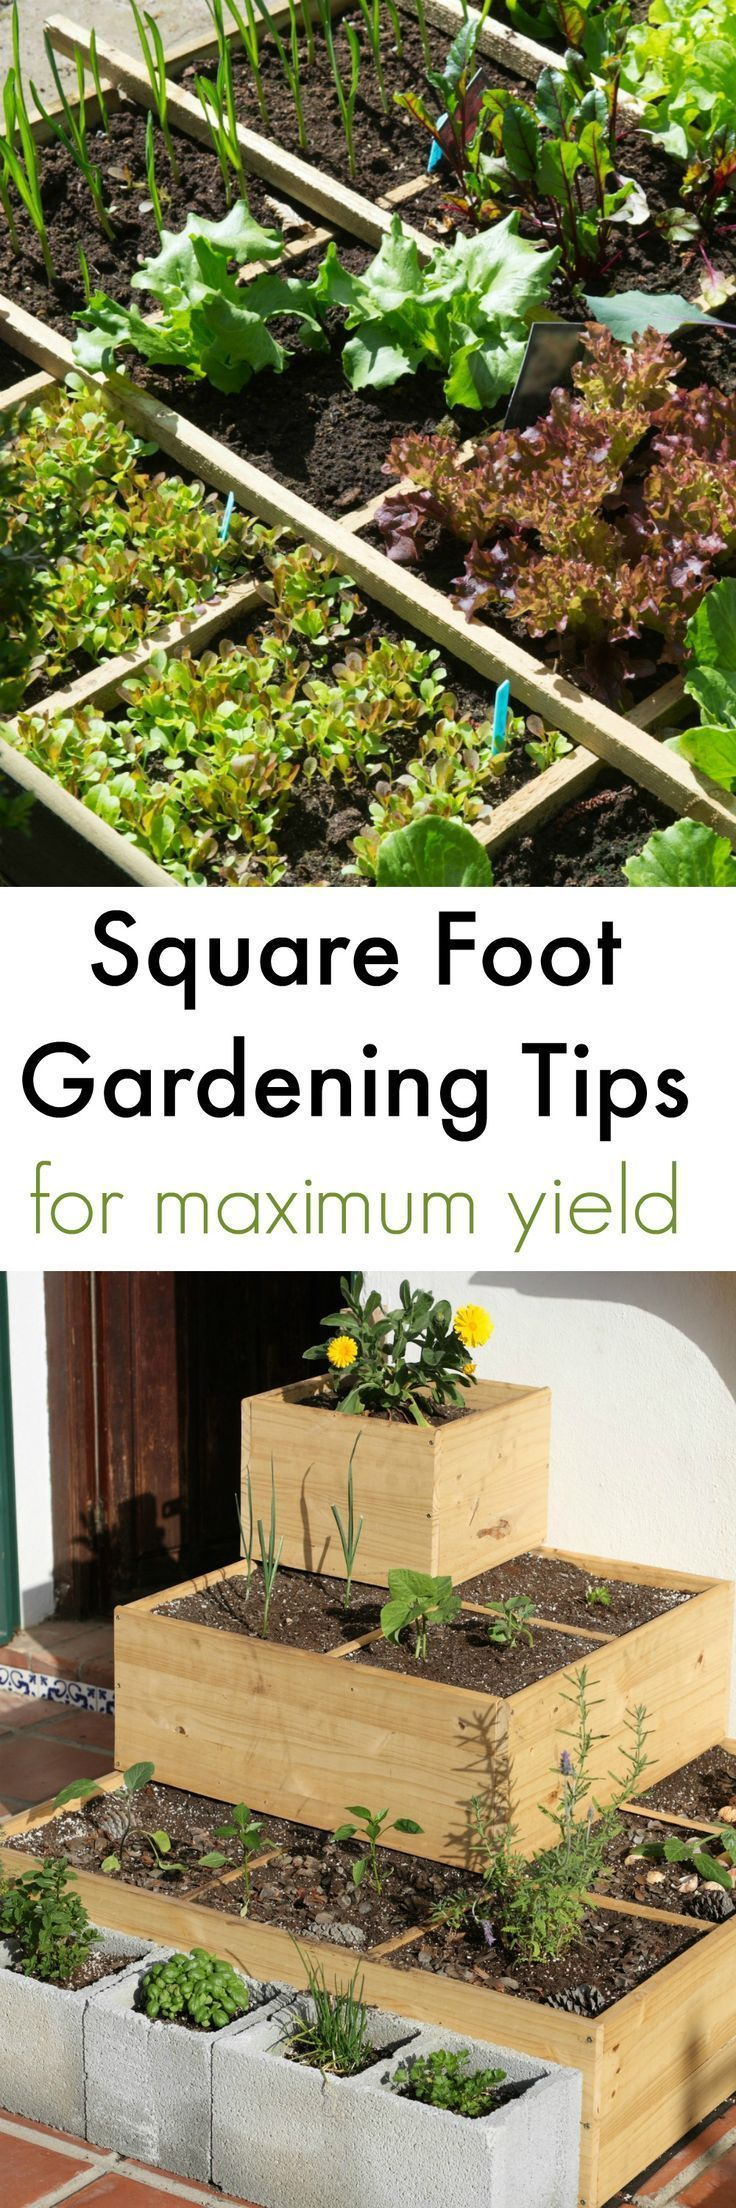 Top 30 stunning low budget diy garden pots and containers 187 home - 574 Best Information About Plants Images On Pinterest Gardens Plants And Gardening